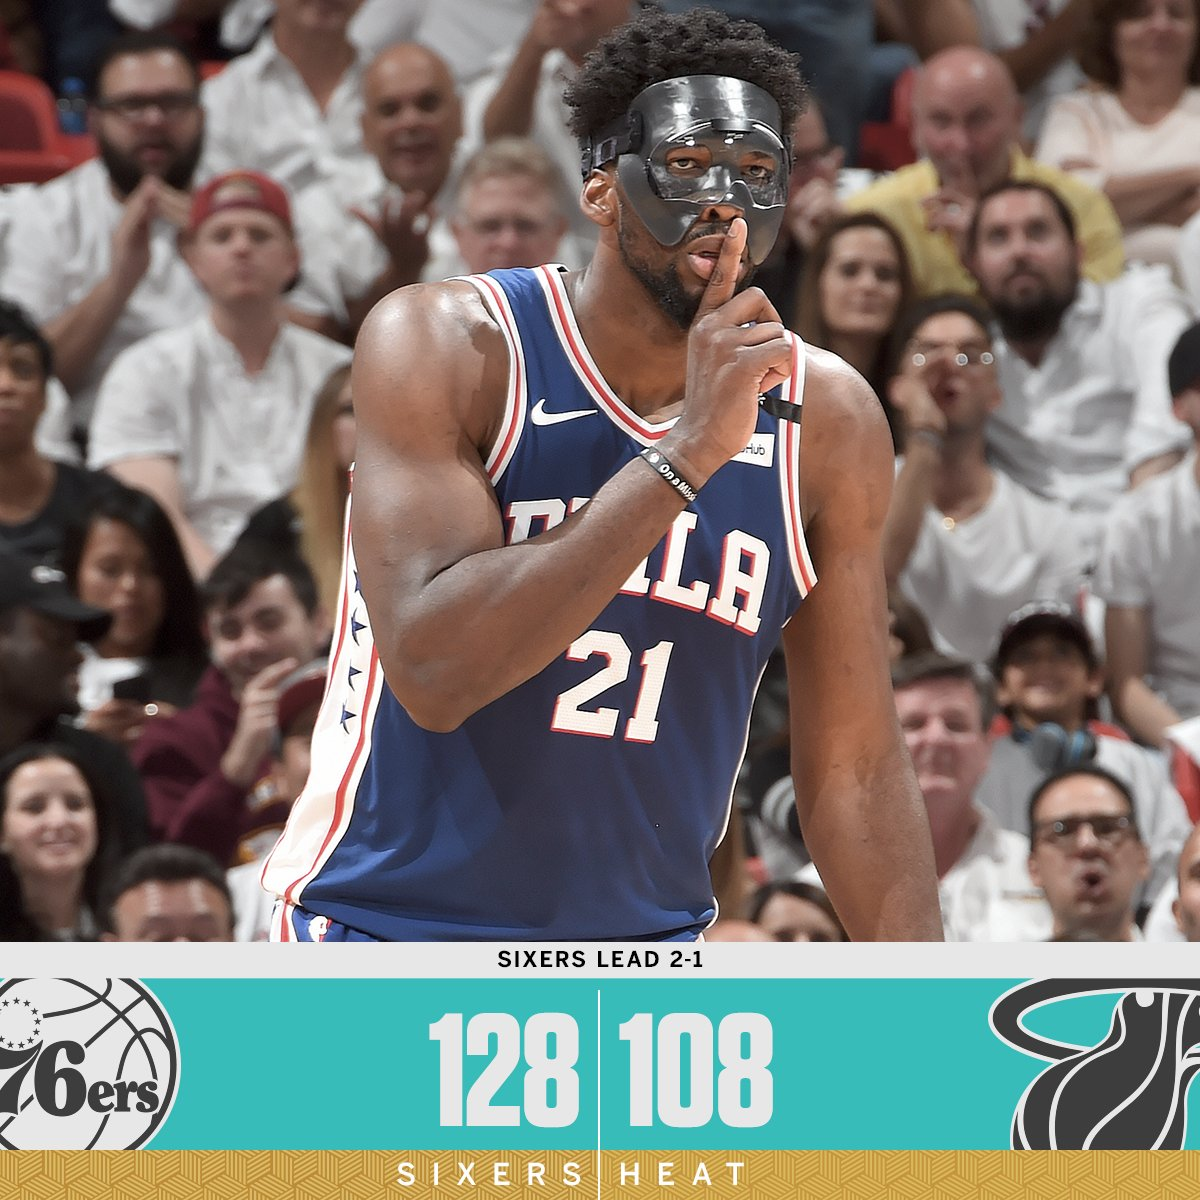 Embiid and the Sixers steal Game 3 in Miami. https://t.co/npbYhNVEE9